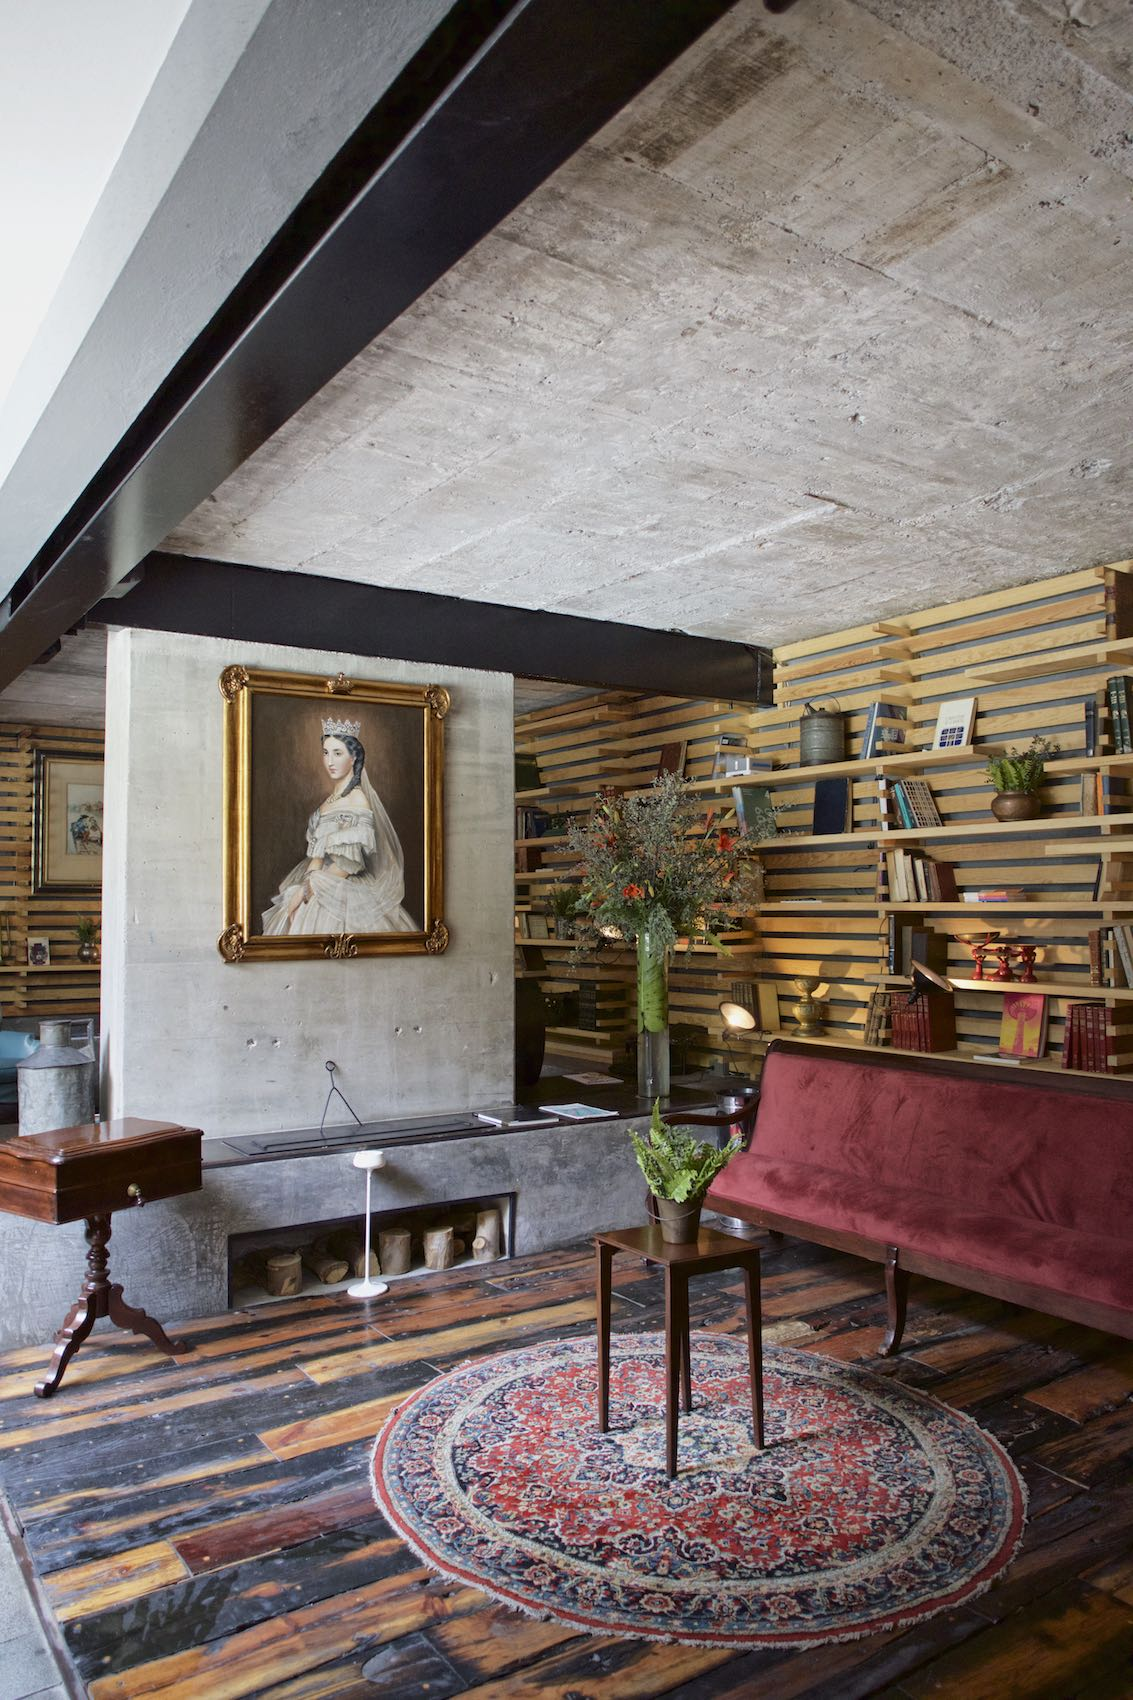 Jody Horton Photography - Hotel lounge with regal adornments in Mexico City.